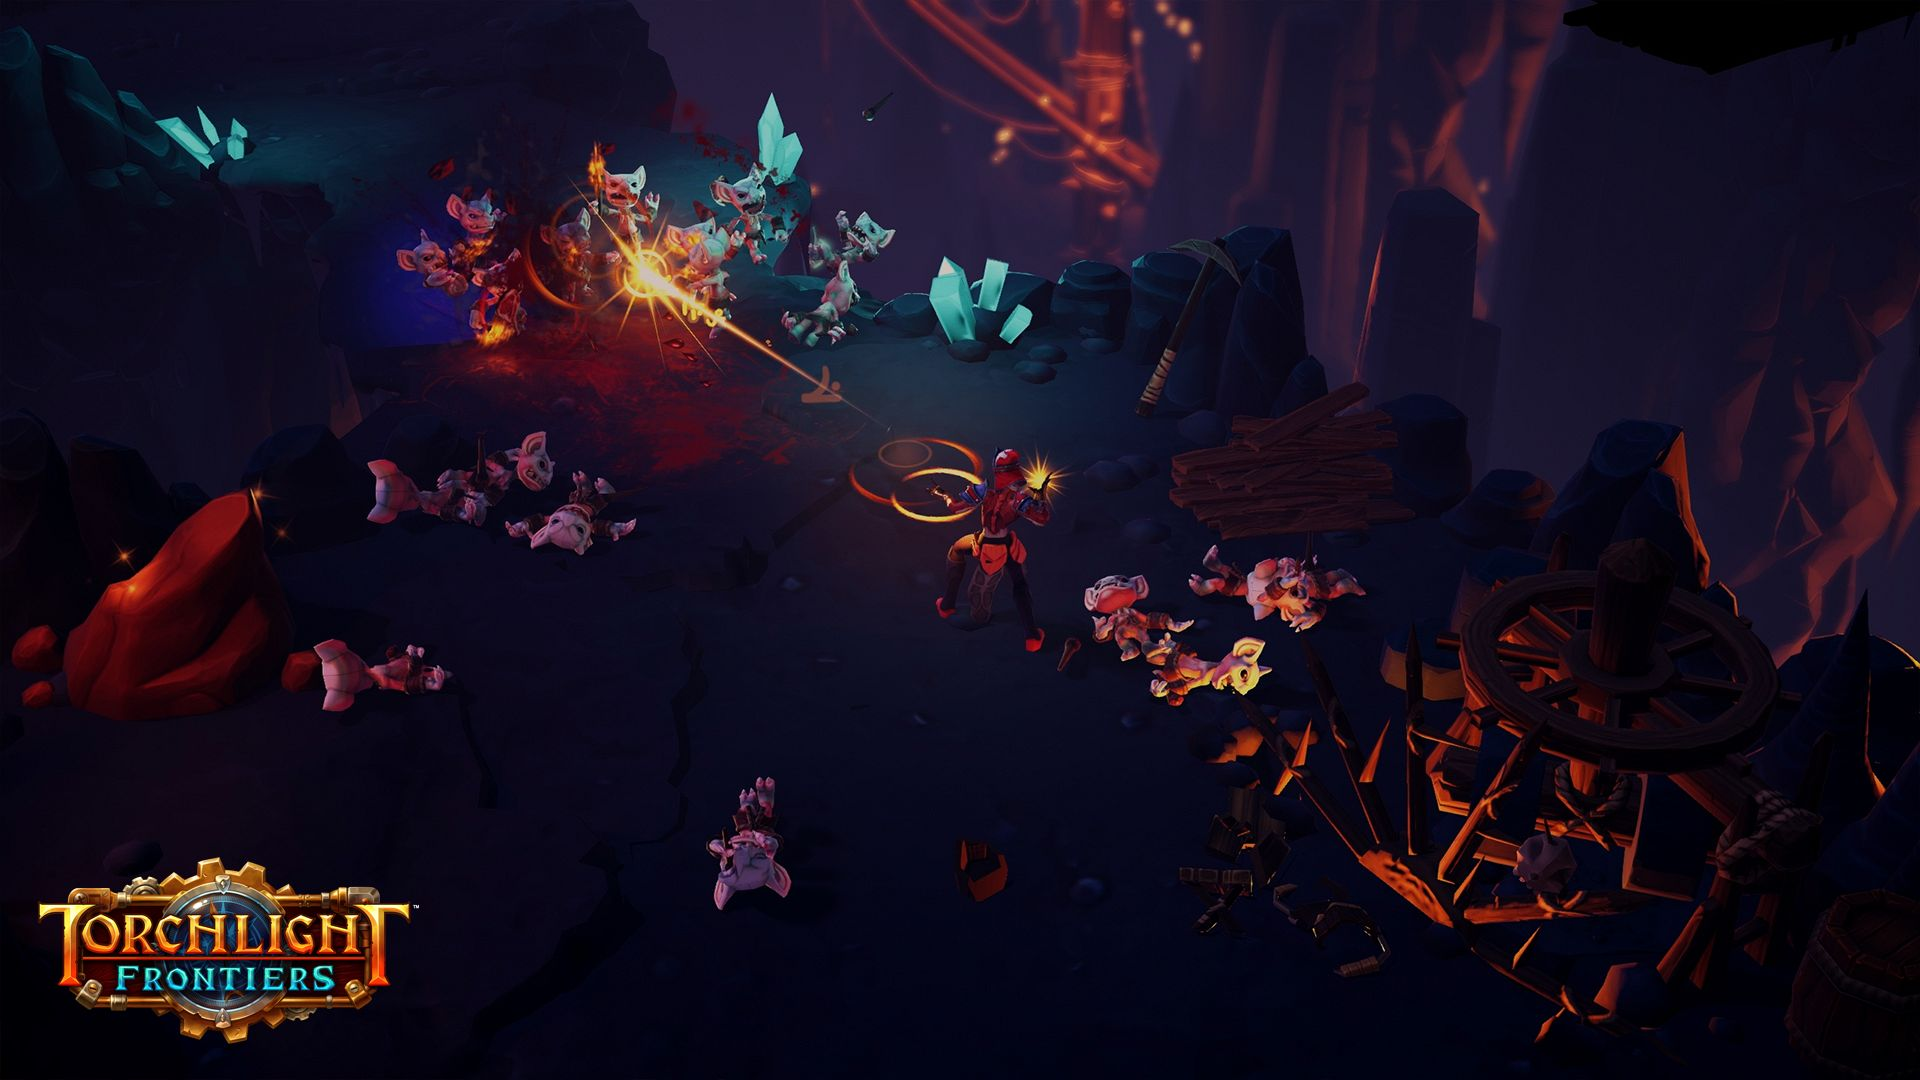 Torchlight Frontiers gameplay video shows familiar mechanics